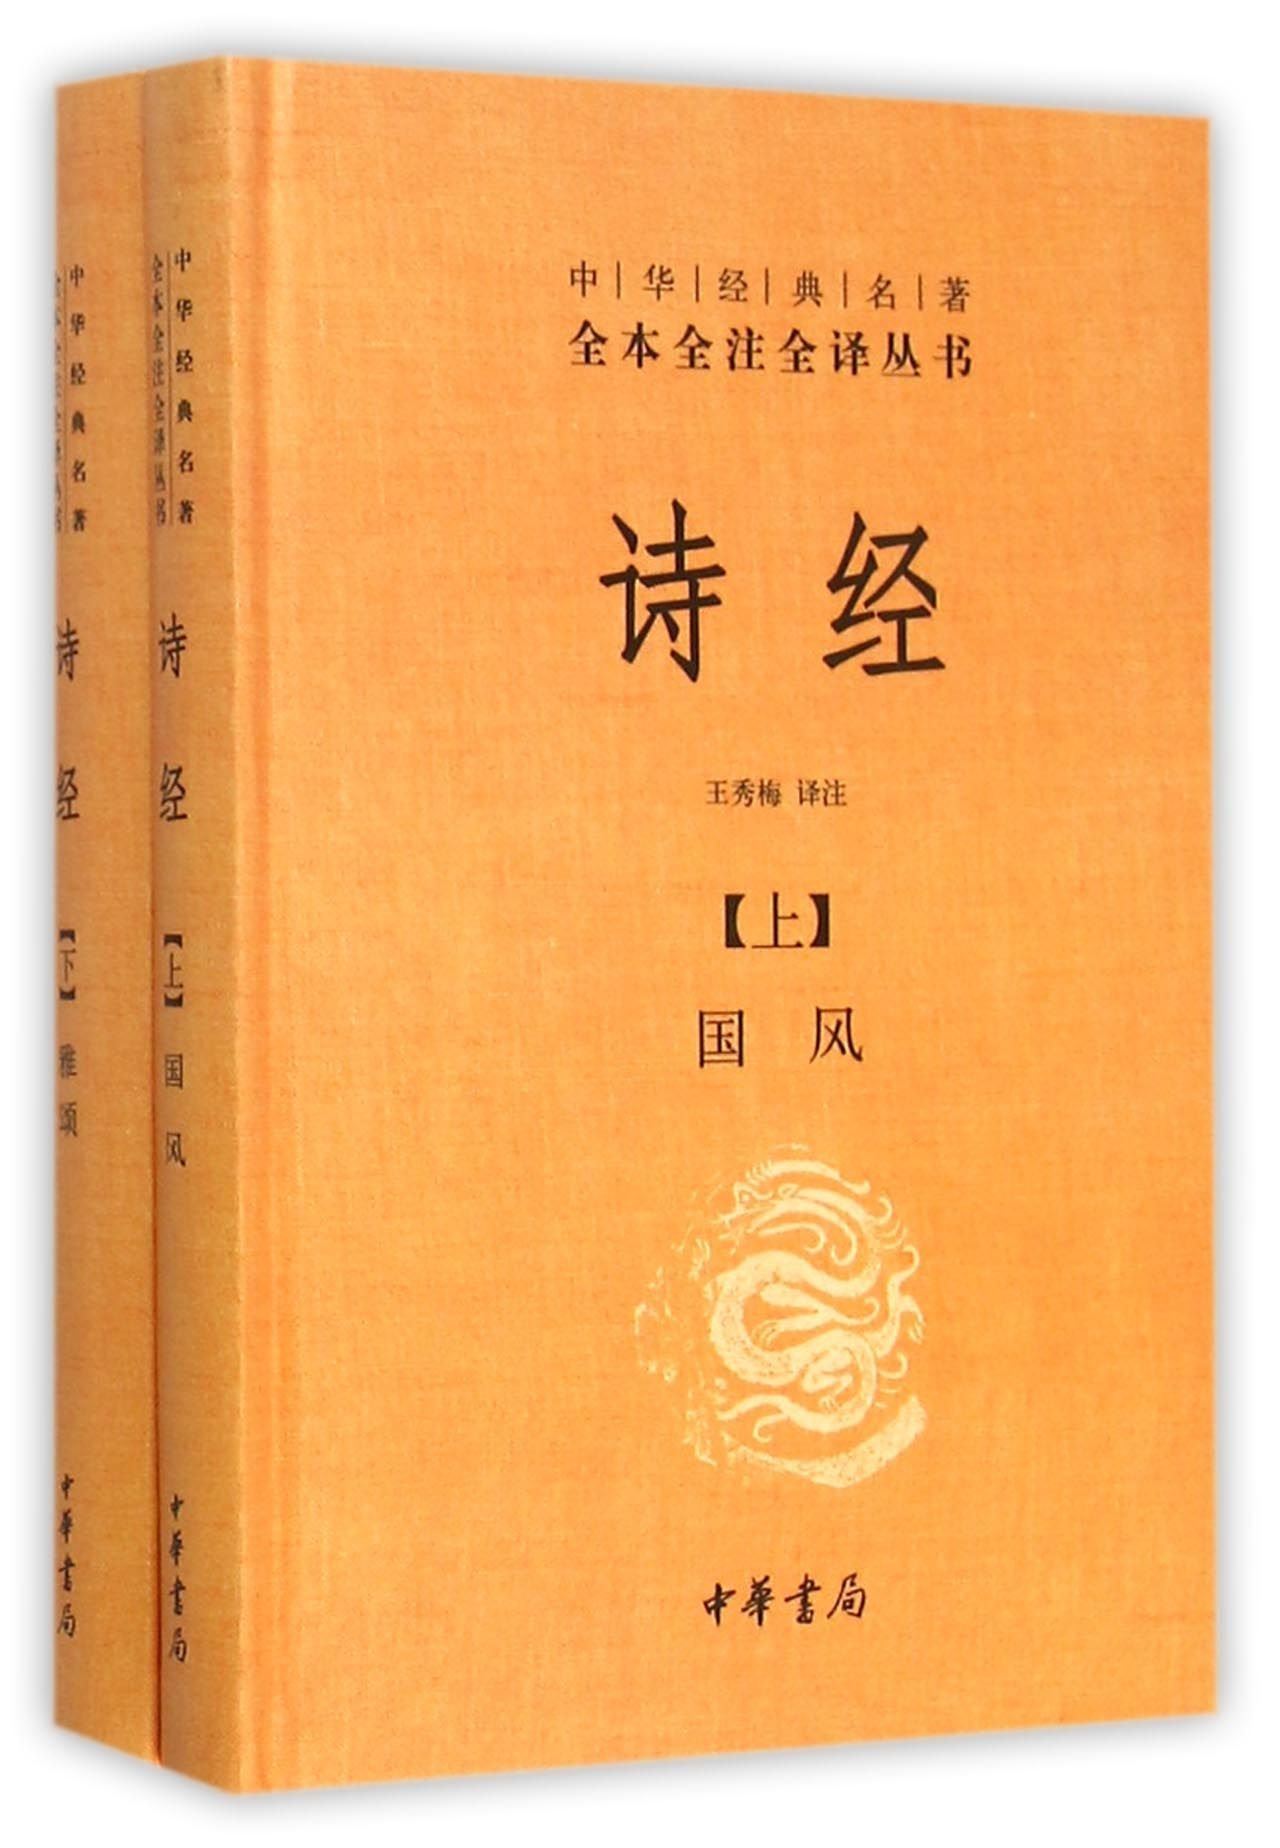 The Book of Songs (2 volumes) (Chinese Edition) PDF